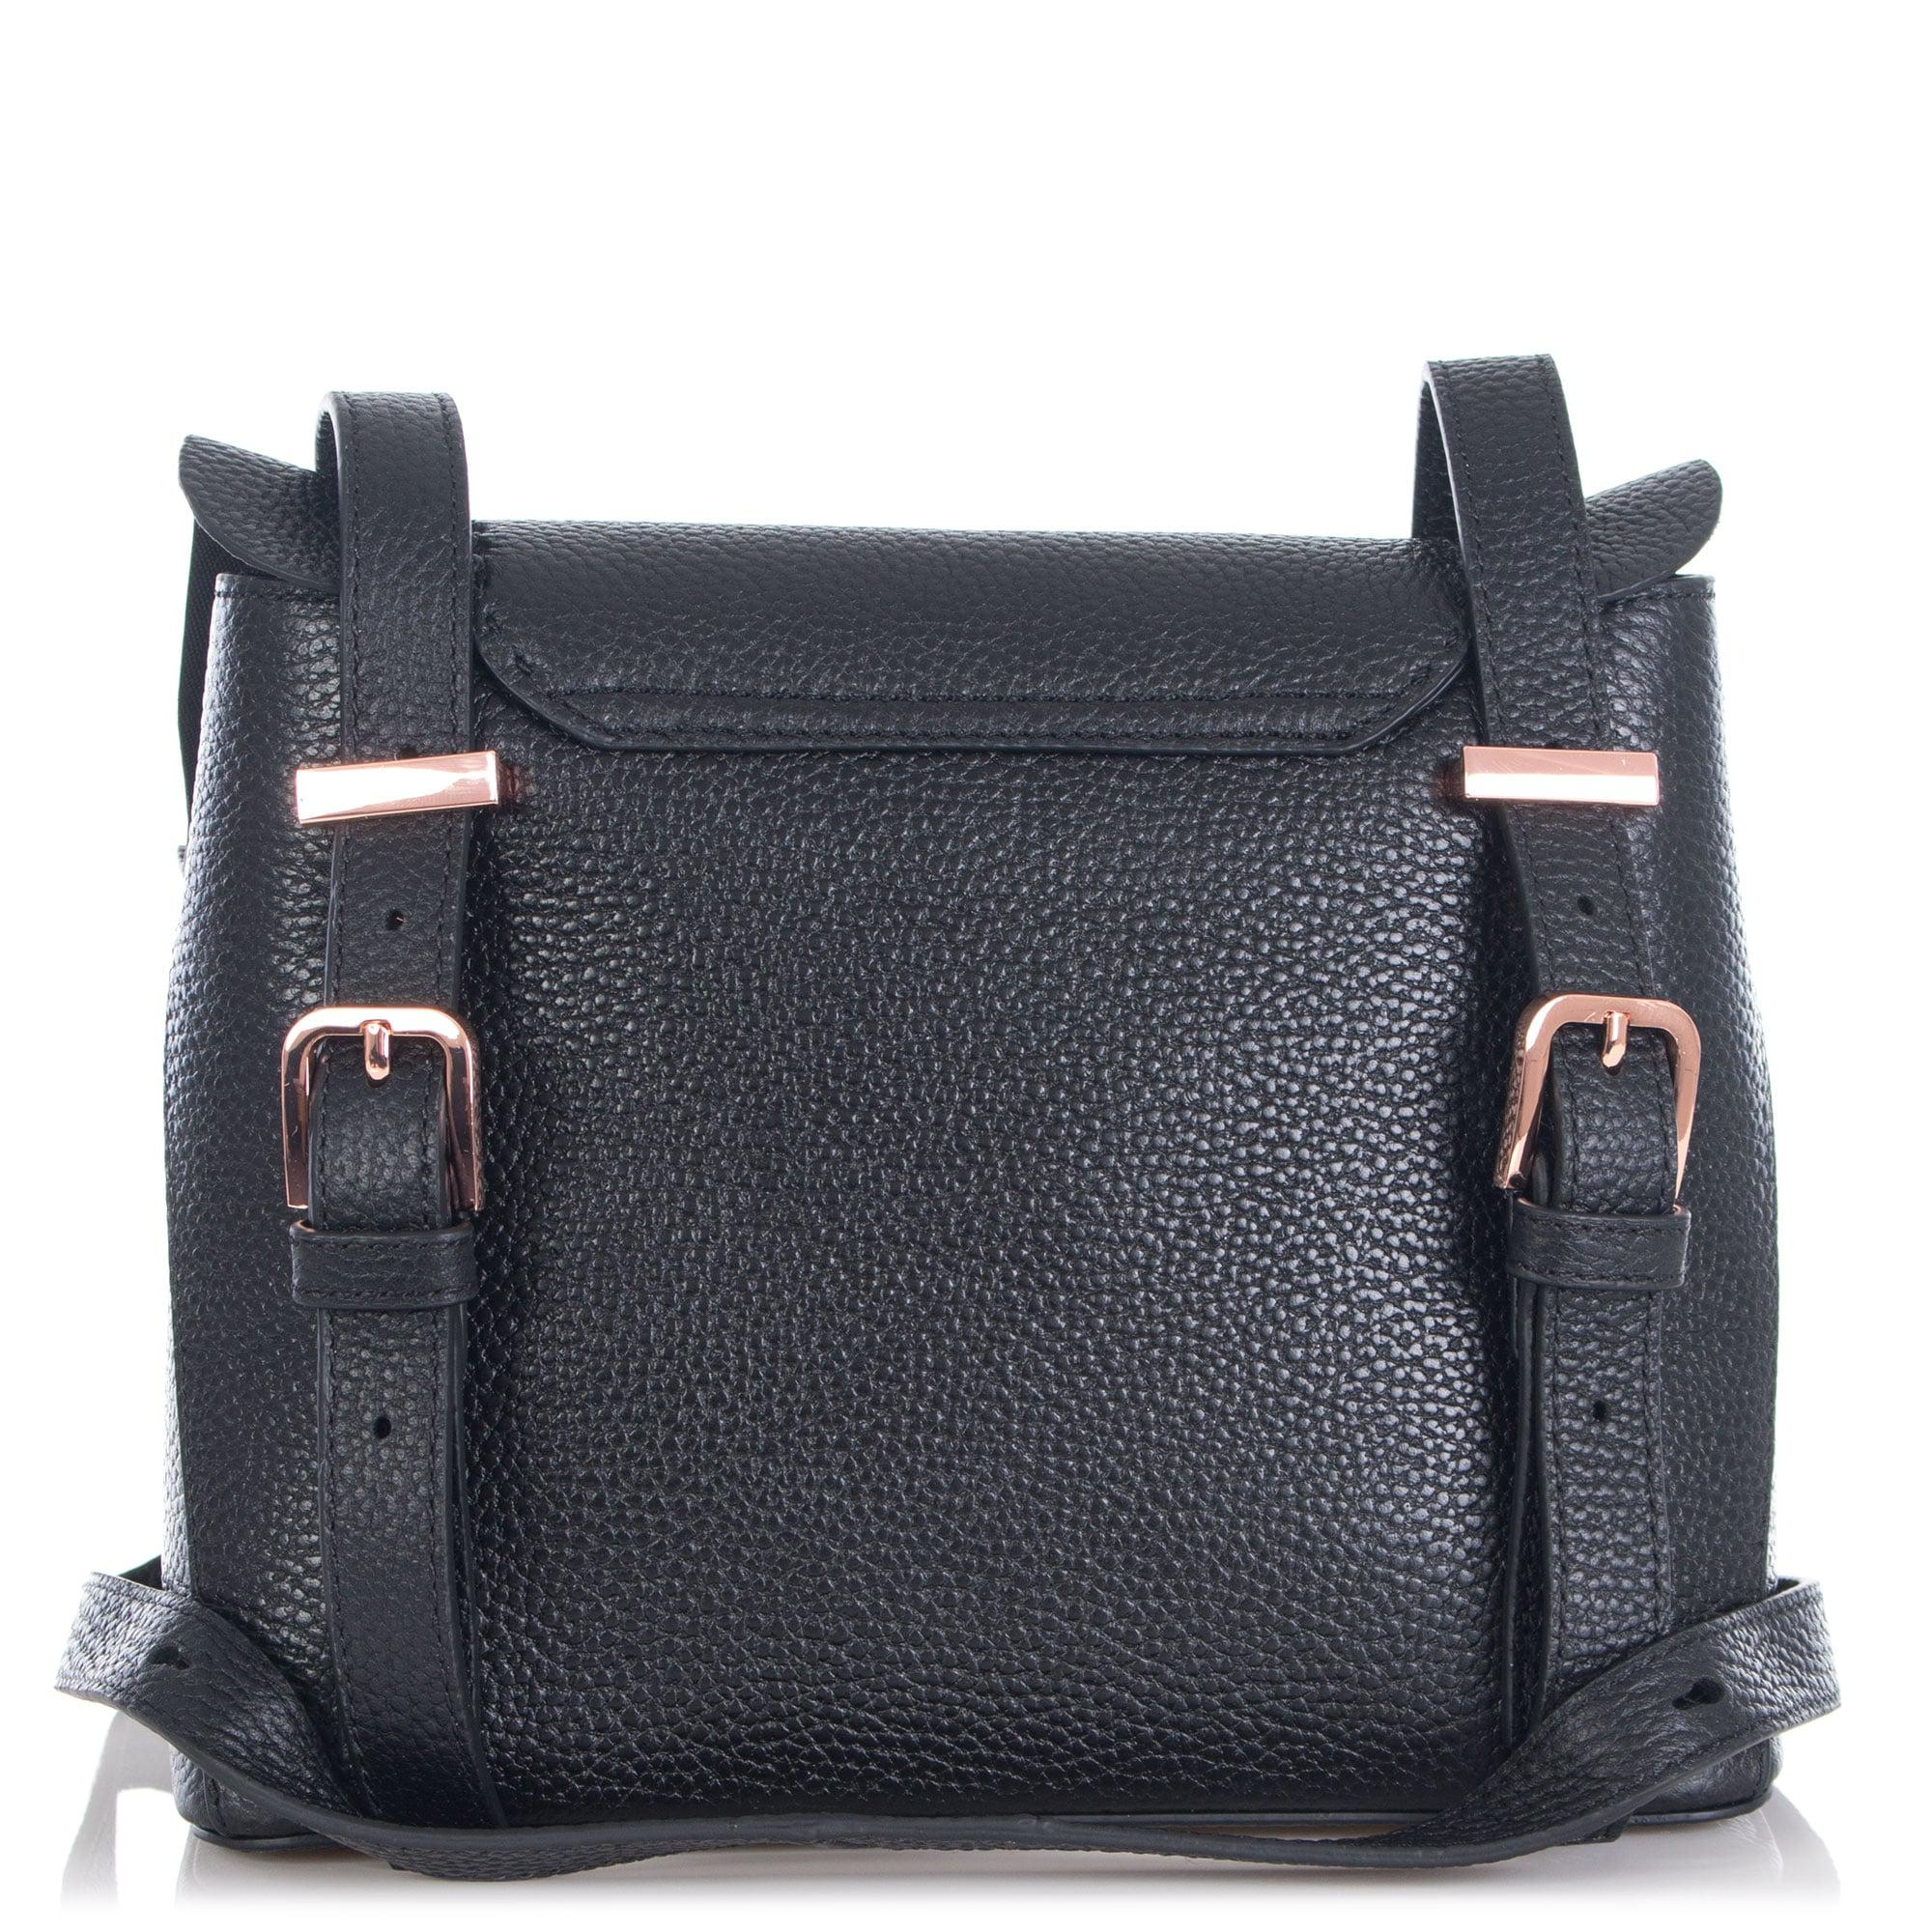 5617d98cd Ted Baker Rammira Leather Ruffle Multiway Backpack in Black - Lyst